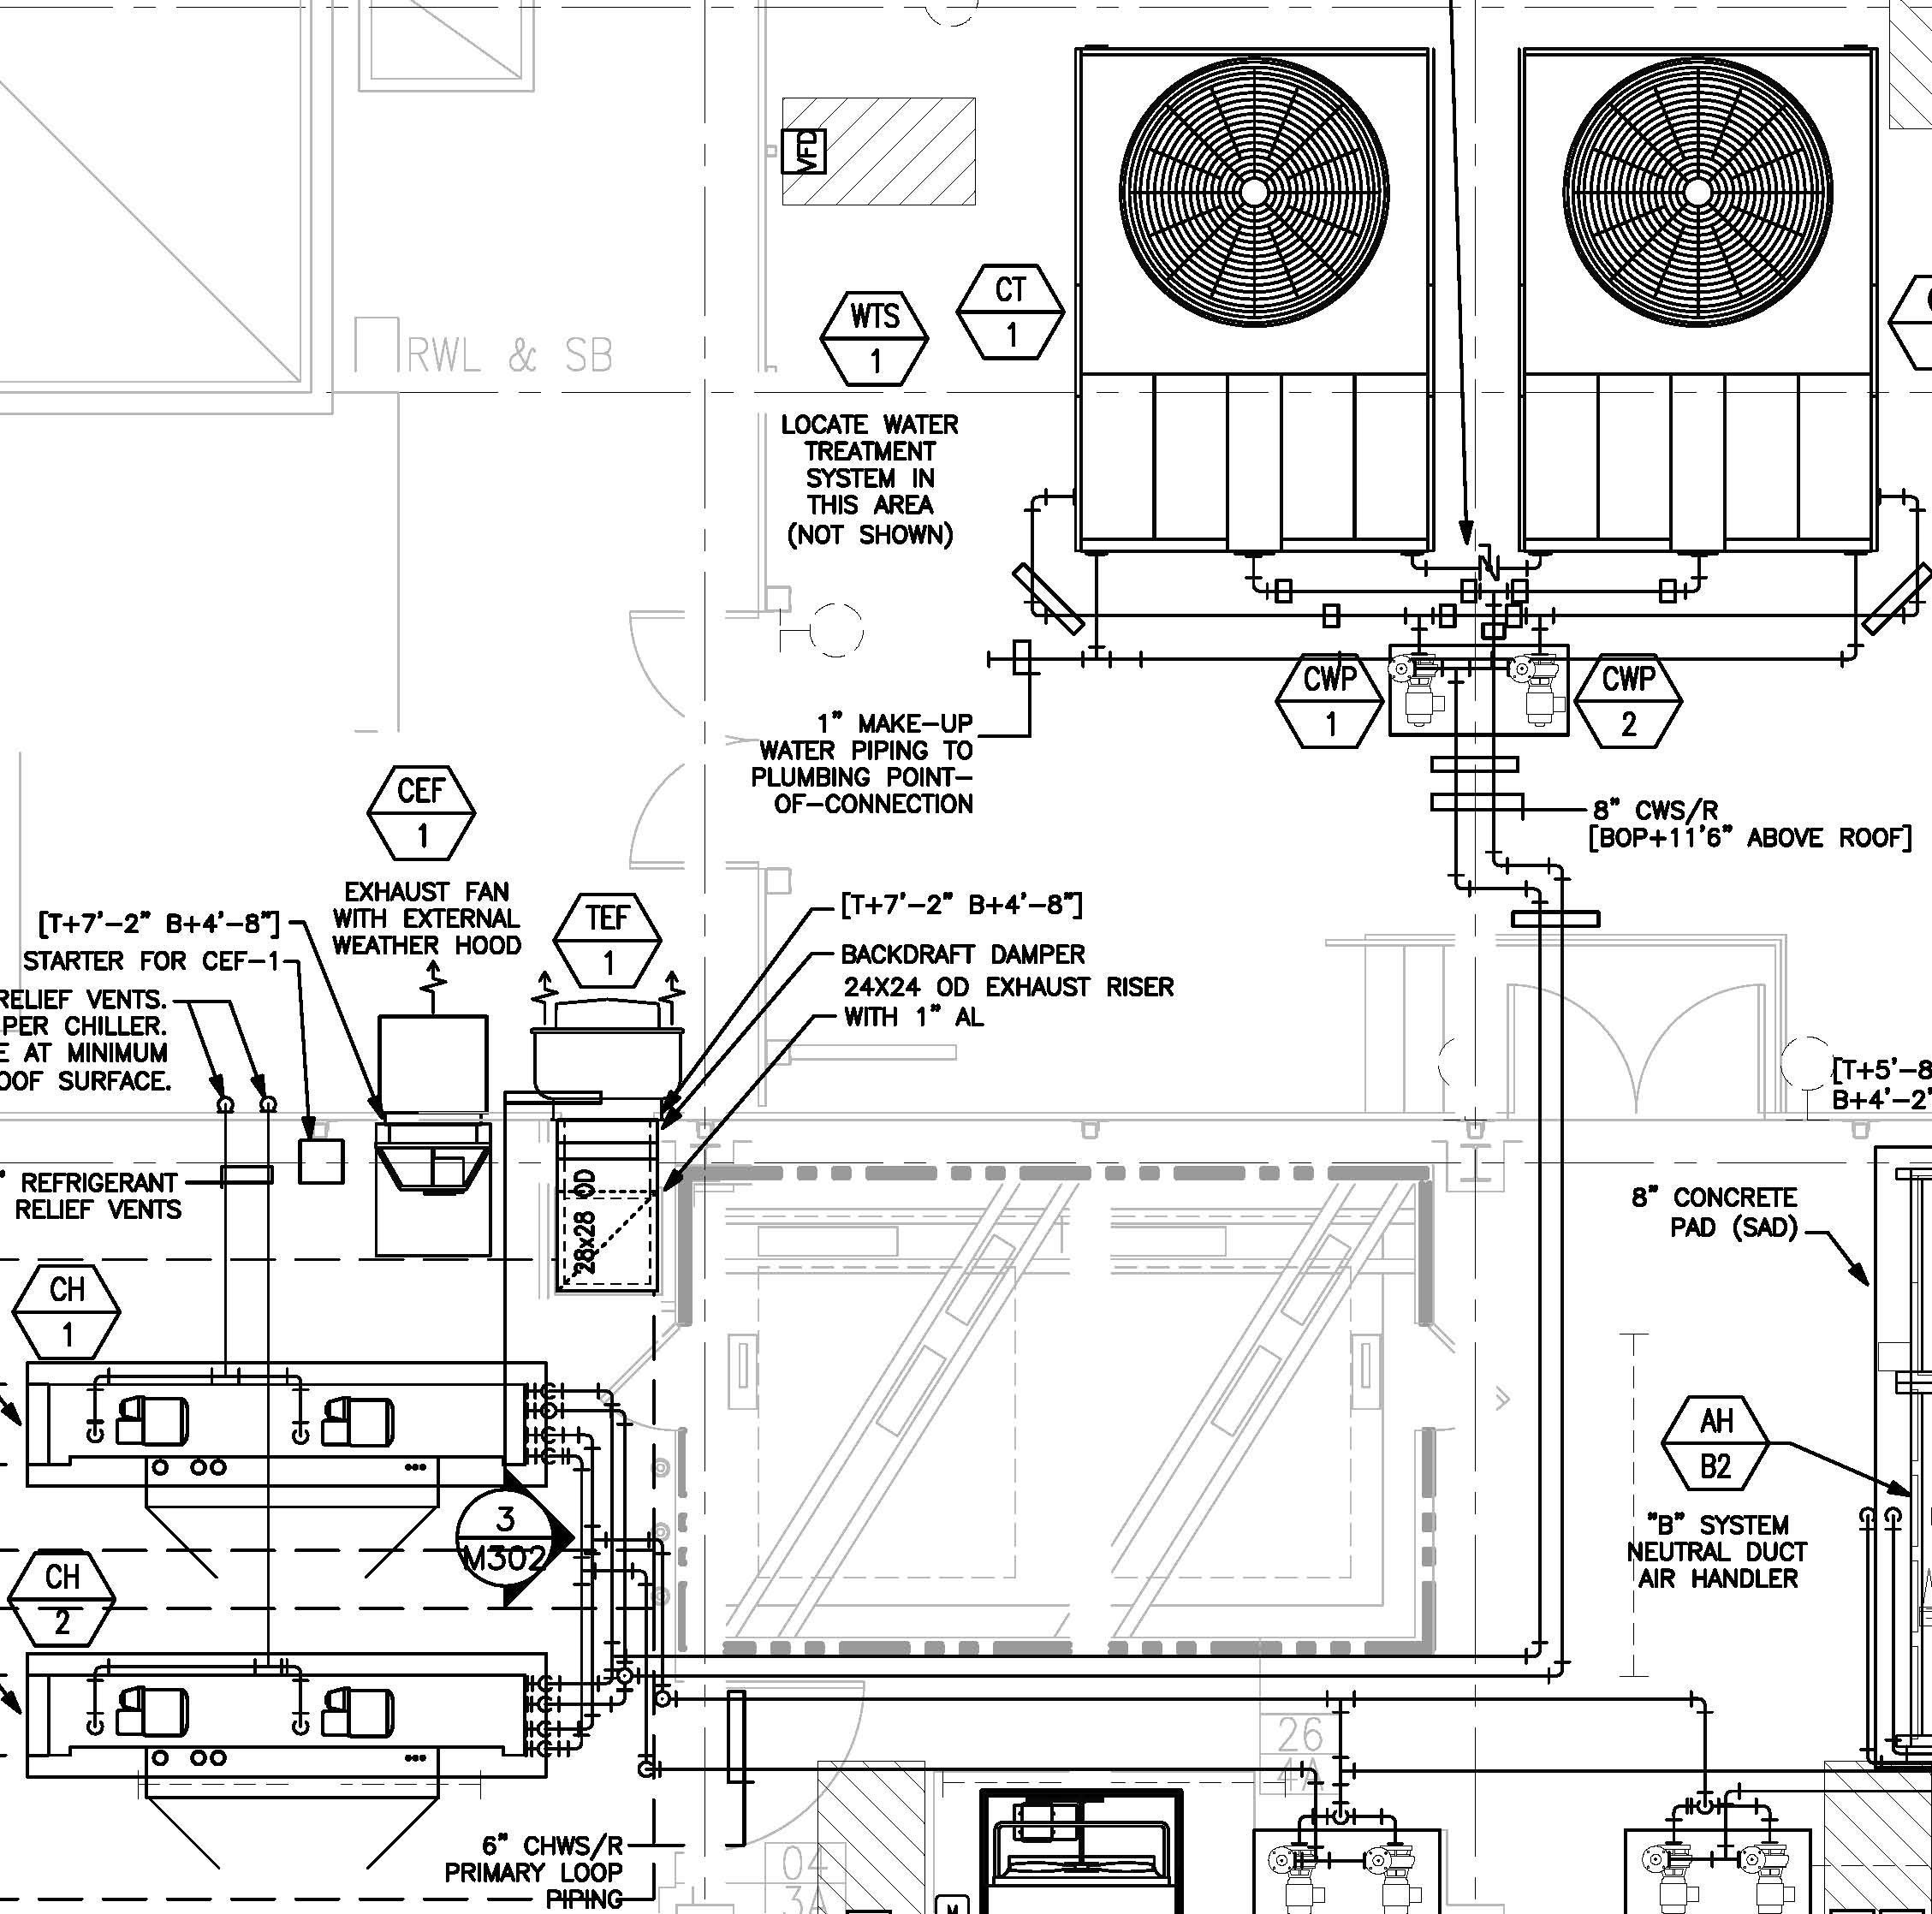 Electric Furnace Wiring Diagram Wiring Diagrams for Baseboard Electric Heaters Fresh Wiring Diagram Of Electric Furnace Wiring Diagram